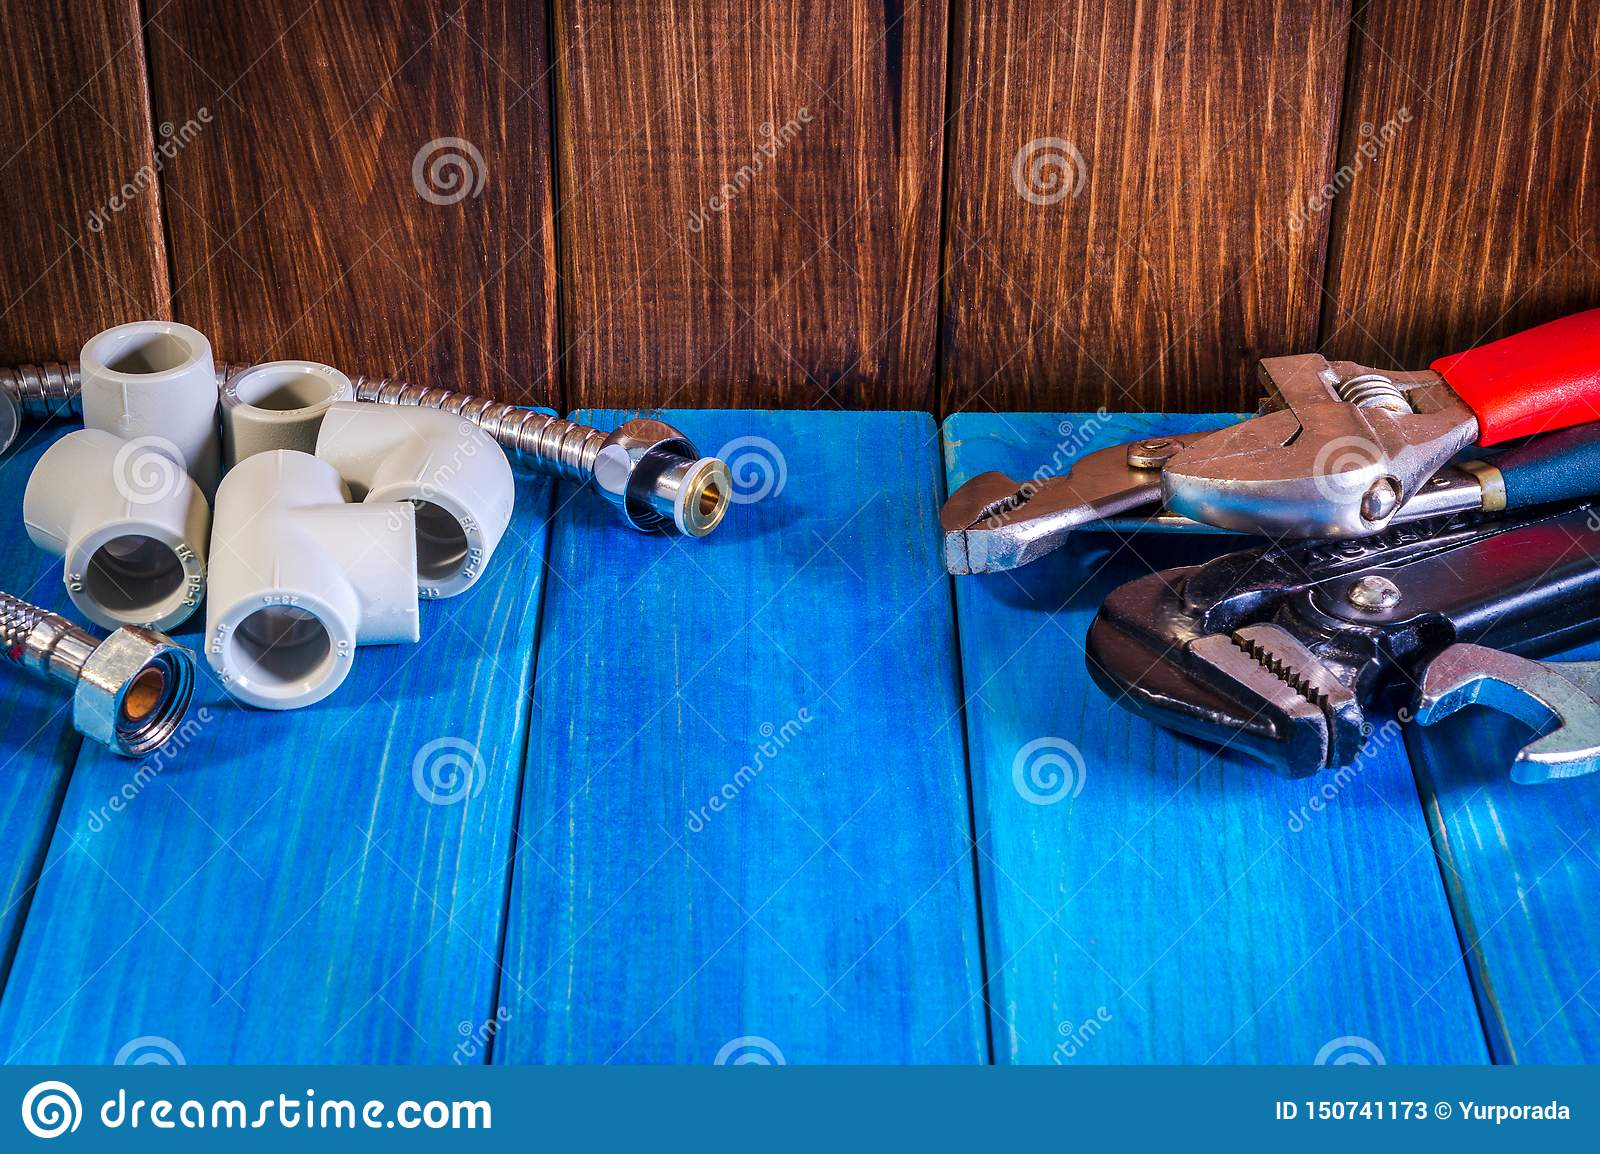 Plumbing Supplies And Tools On A Blue Wooden Background